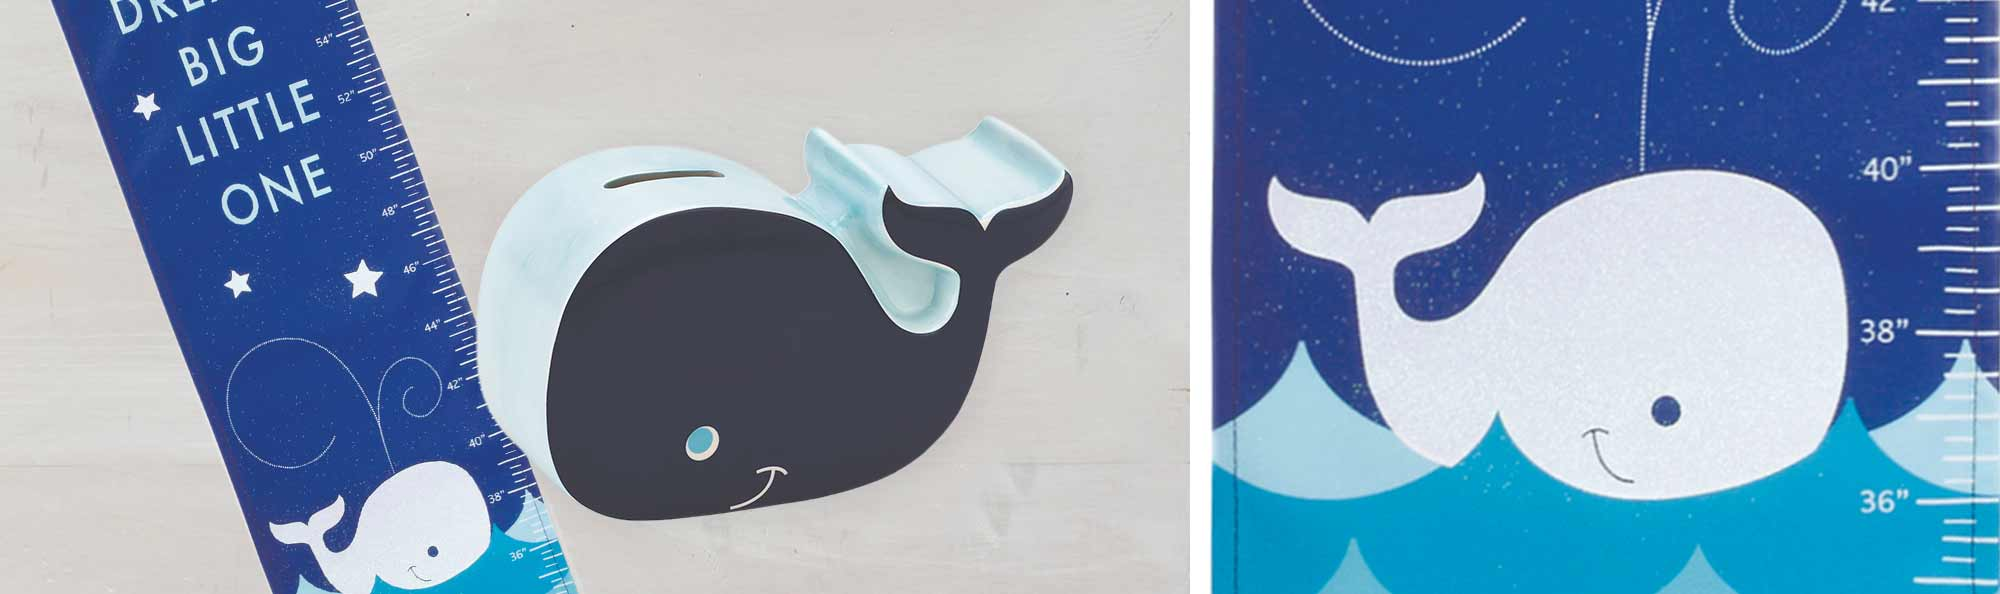 a fabric that is a ruler for babys or kids to measure their hight and a coin whale bank